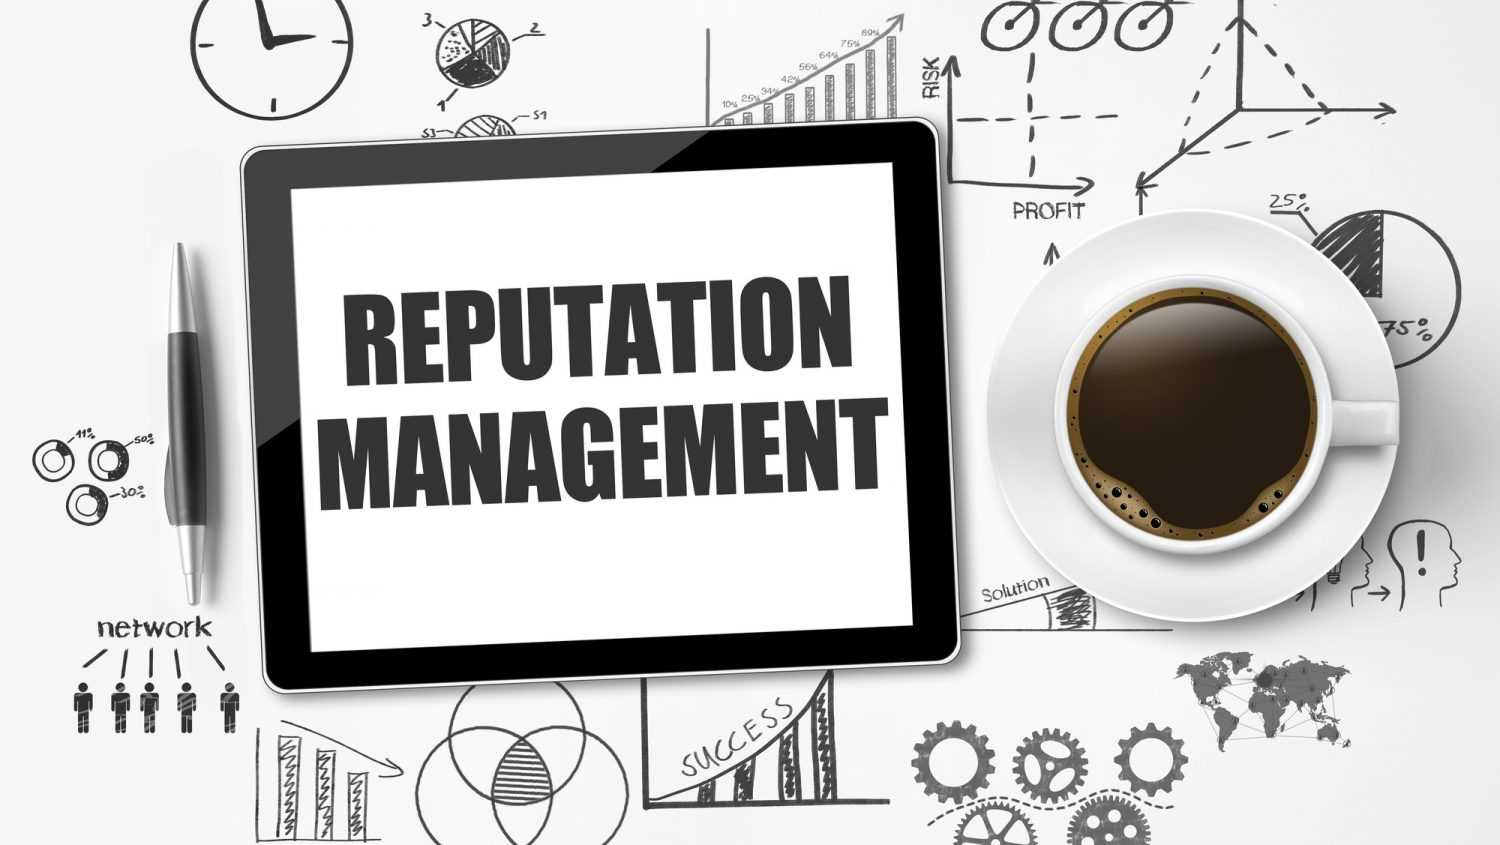 Online reputation management: What are the benefits? One of the major benefits of online reputation management is the positive word-of-mouth. Other benefits include beneficial business relationships and it encourages people to leave positive reviews. The biggest problem people face? They don't know where to start.